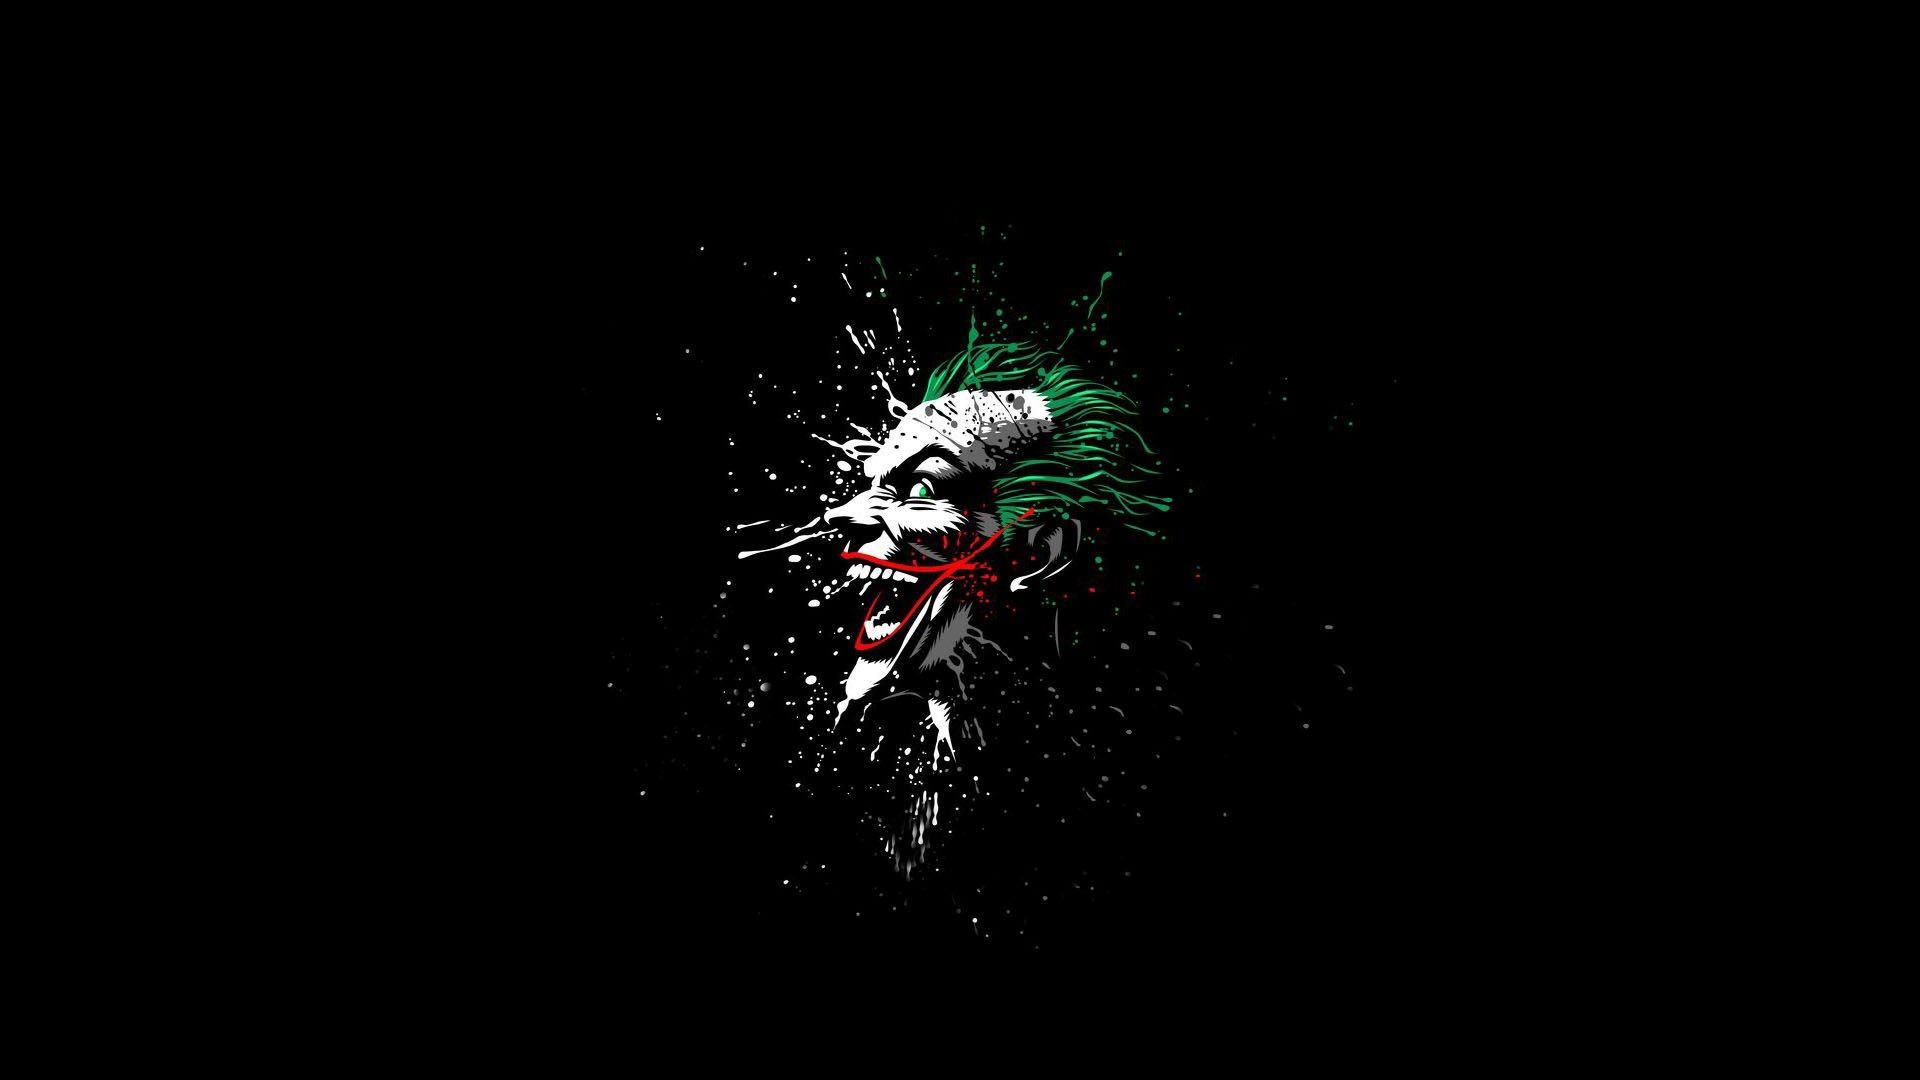 1920x1080 joker for desktop free Joker art, Joker, Black